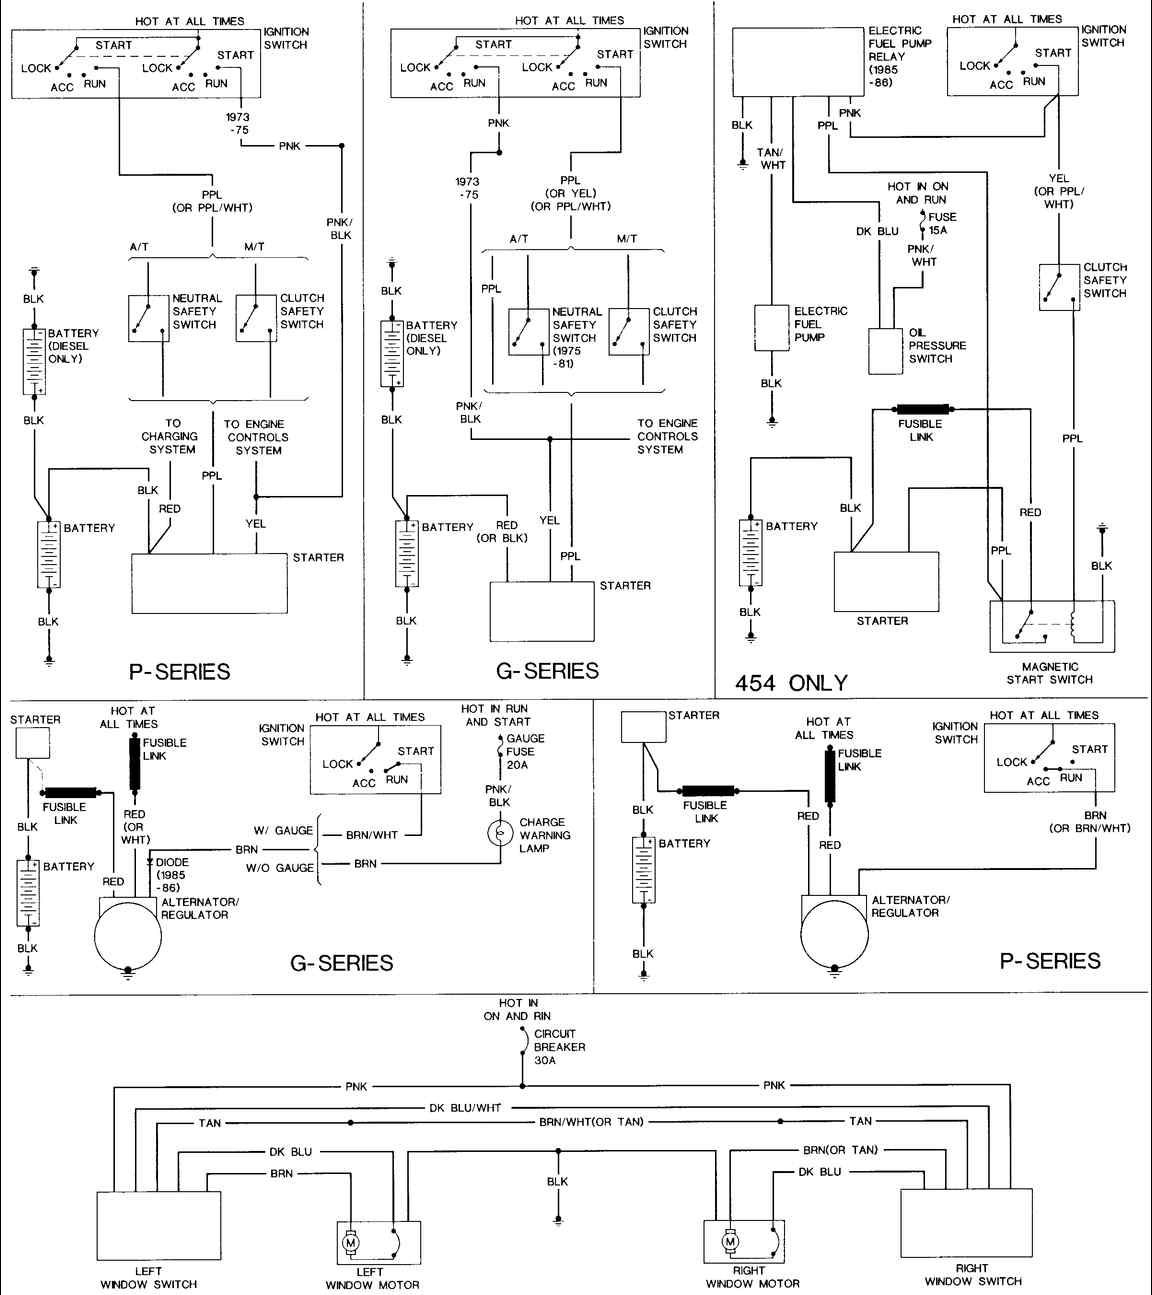 85 chevy truck wiring diagram 85 chevy van the steering column 1978 ford vacuum diagram 85 chevy truck wiring diagram 85 chevy van the steering column and